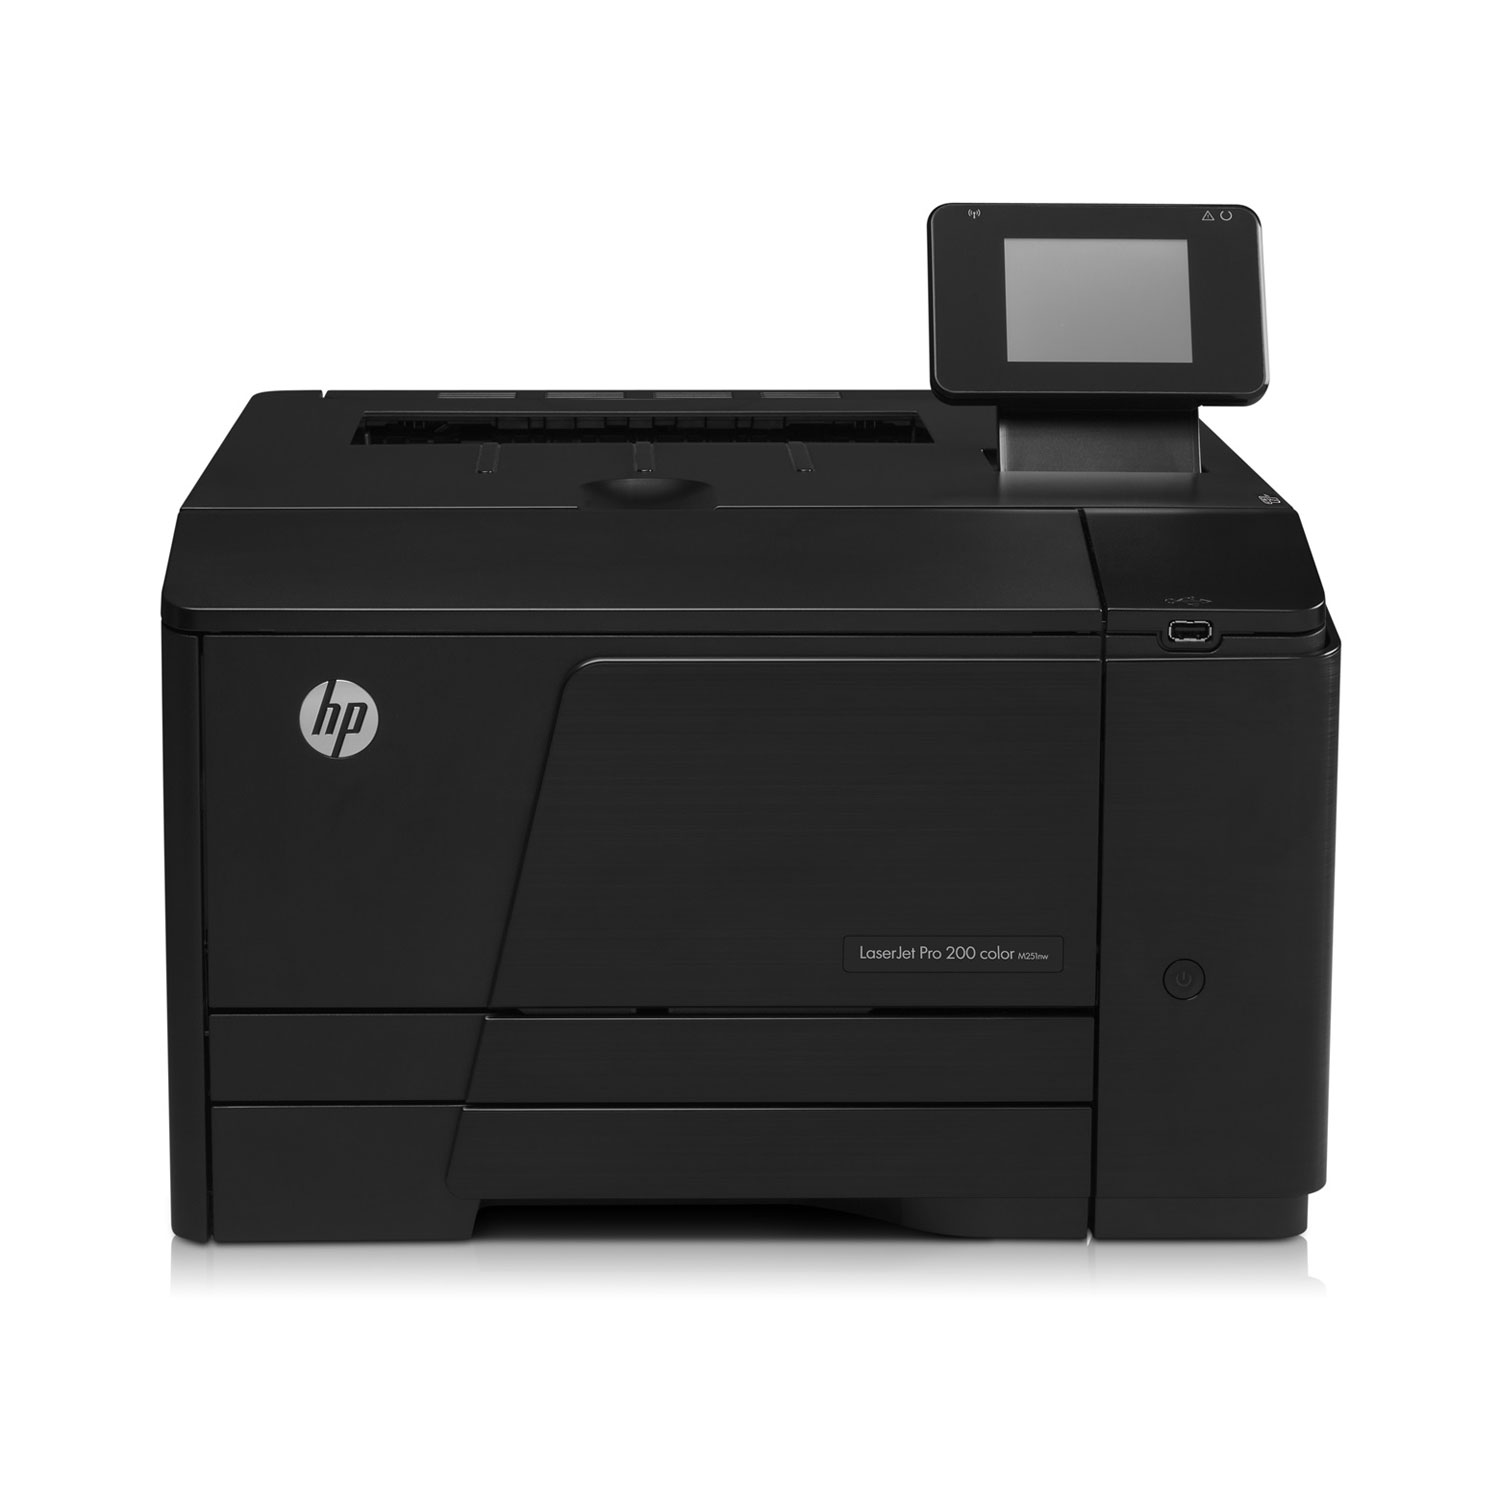 hp laserjet pro 200 m251nw imprimante laser hp sur ldlc. Black Bedroom Furniture Sets. Home Design Ideas